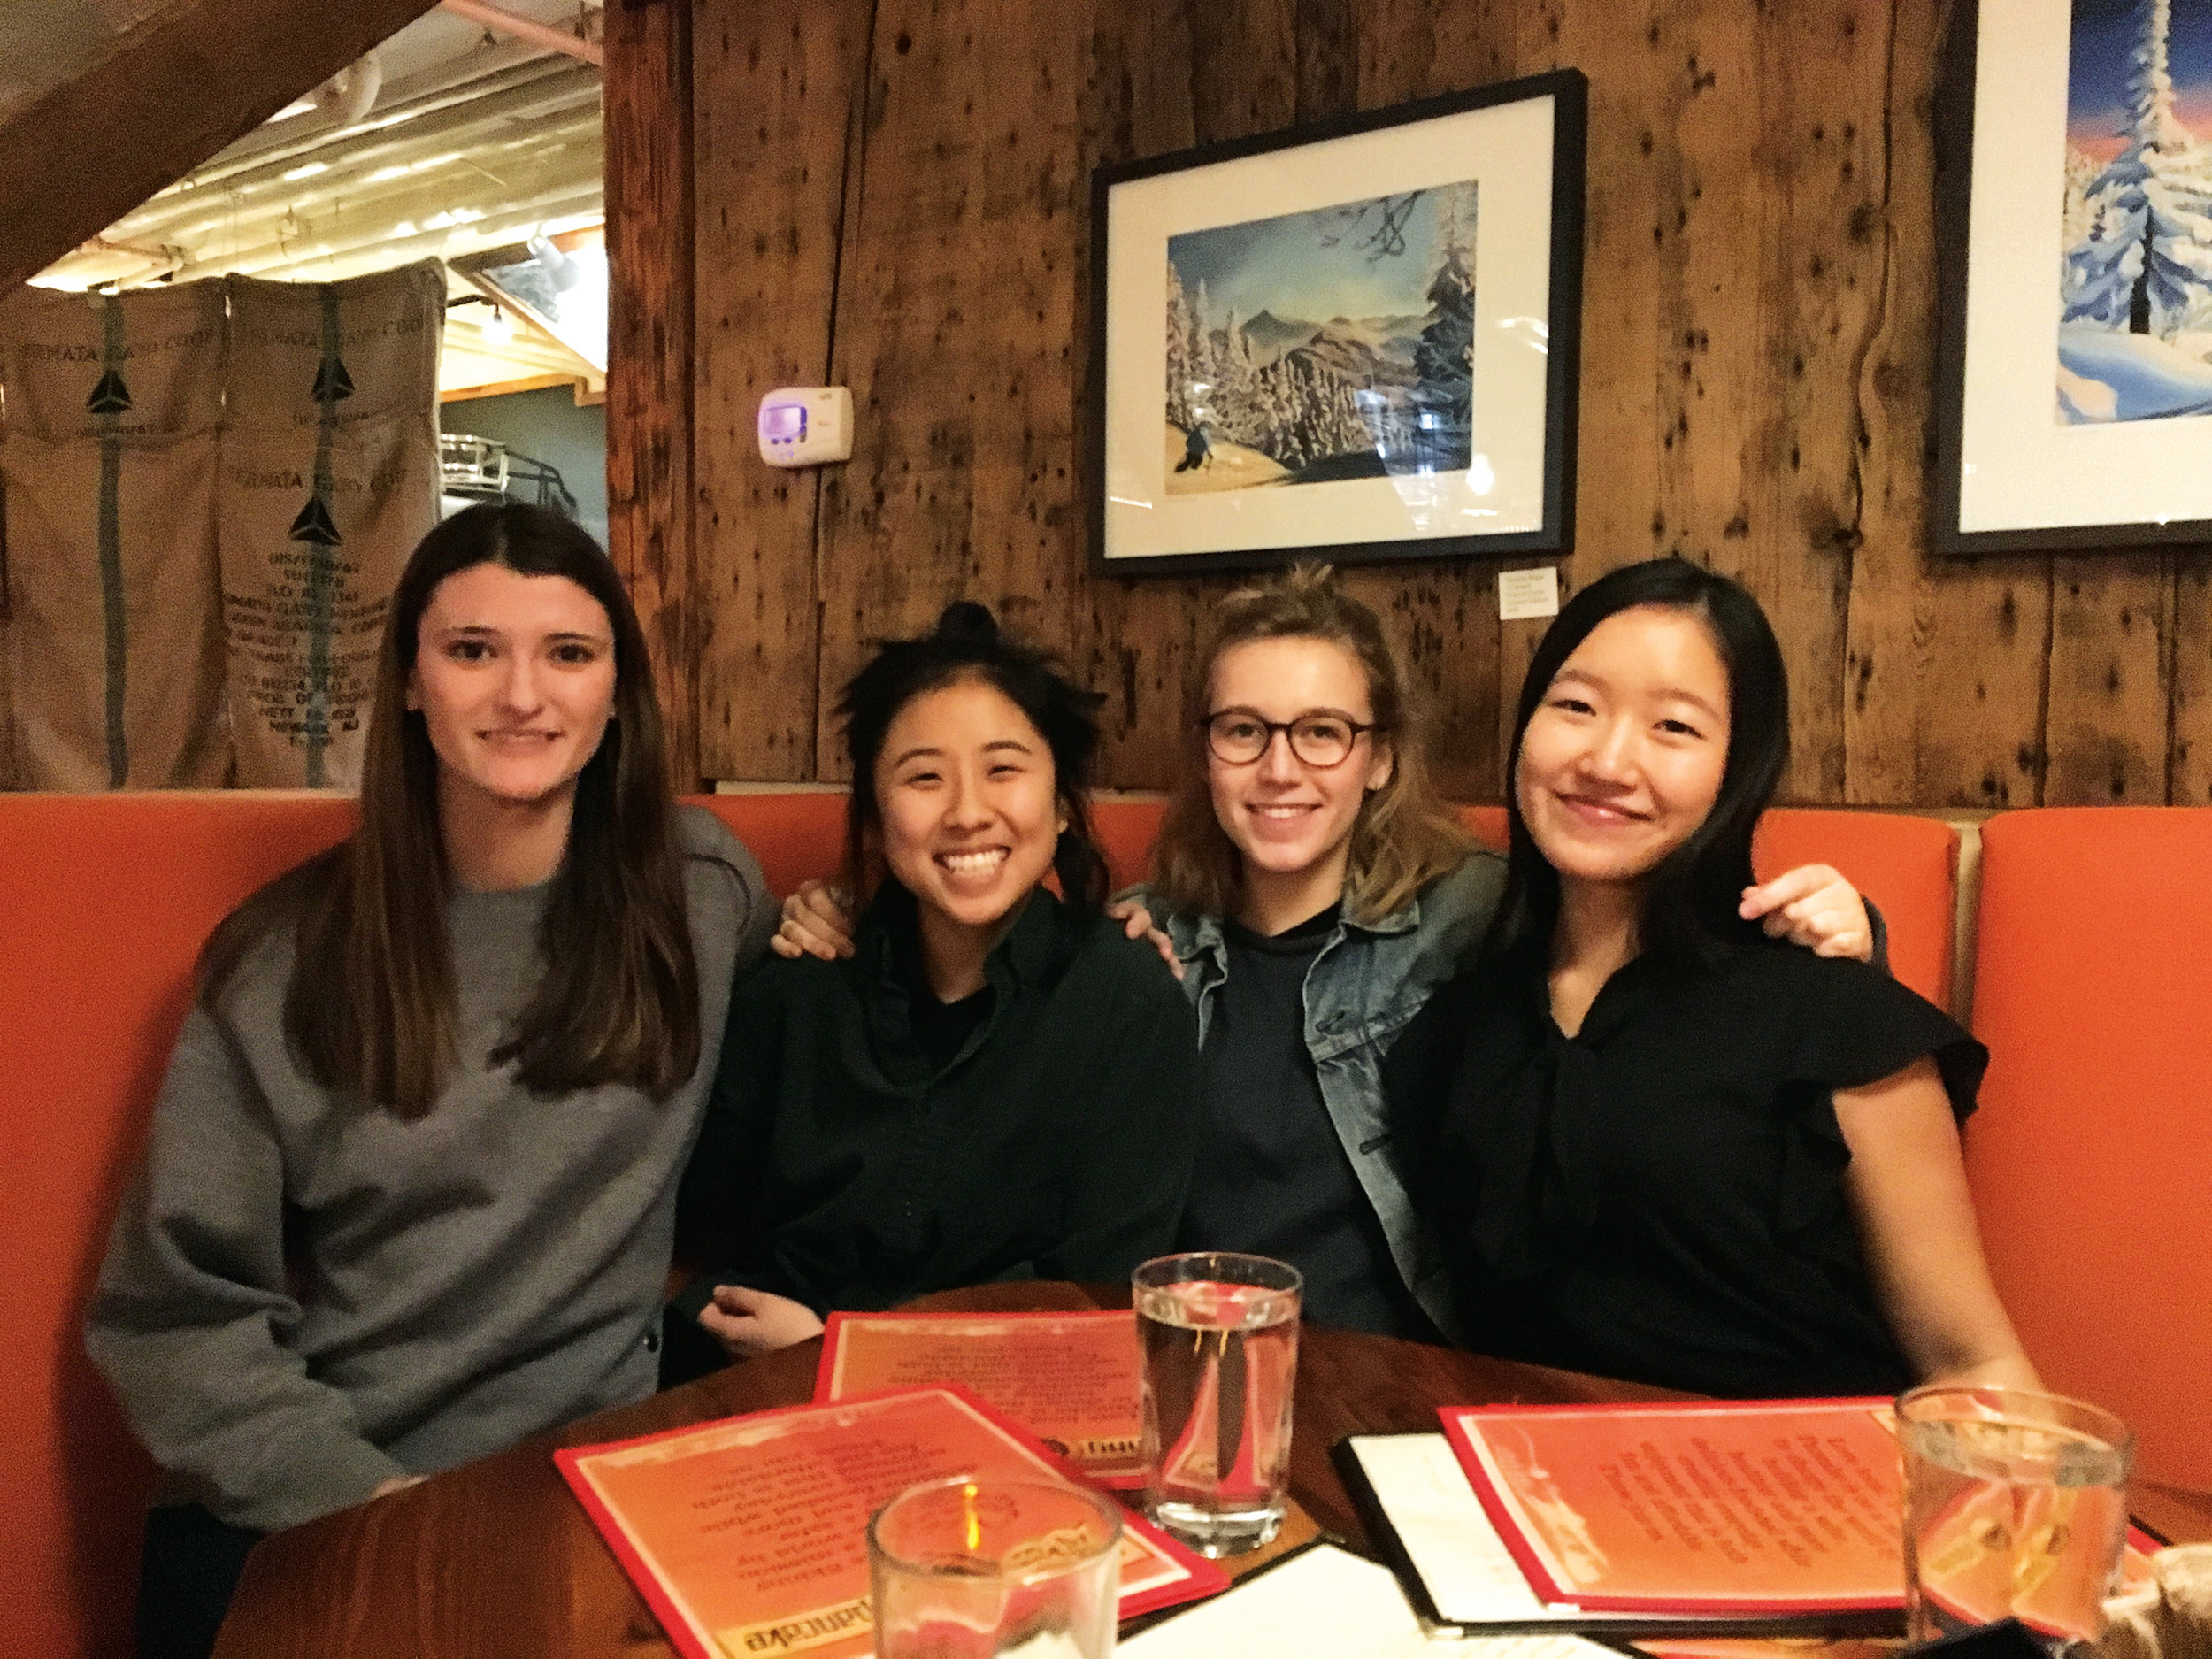 (L. to r.) Hattie Newton '17, Wendy Huang '14, Anne Muller '14, and Eva Wang '15 gathered for a young alumni dinner in Hanover, N.H.